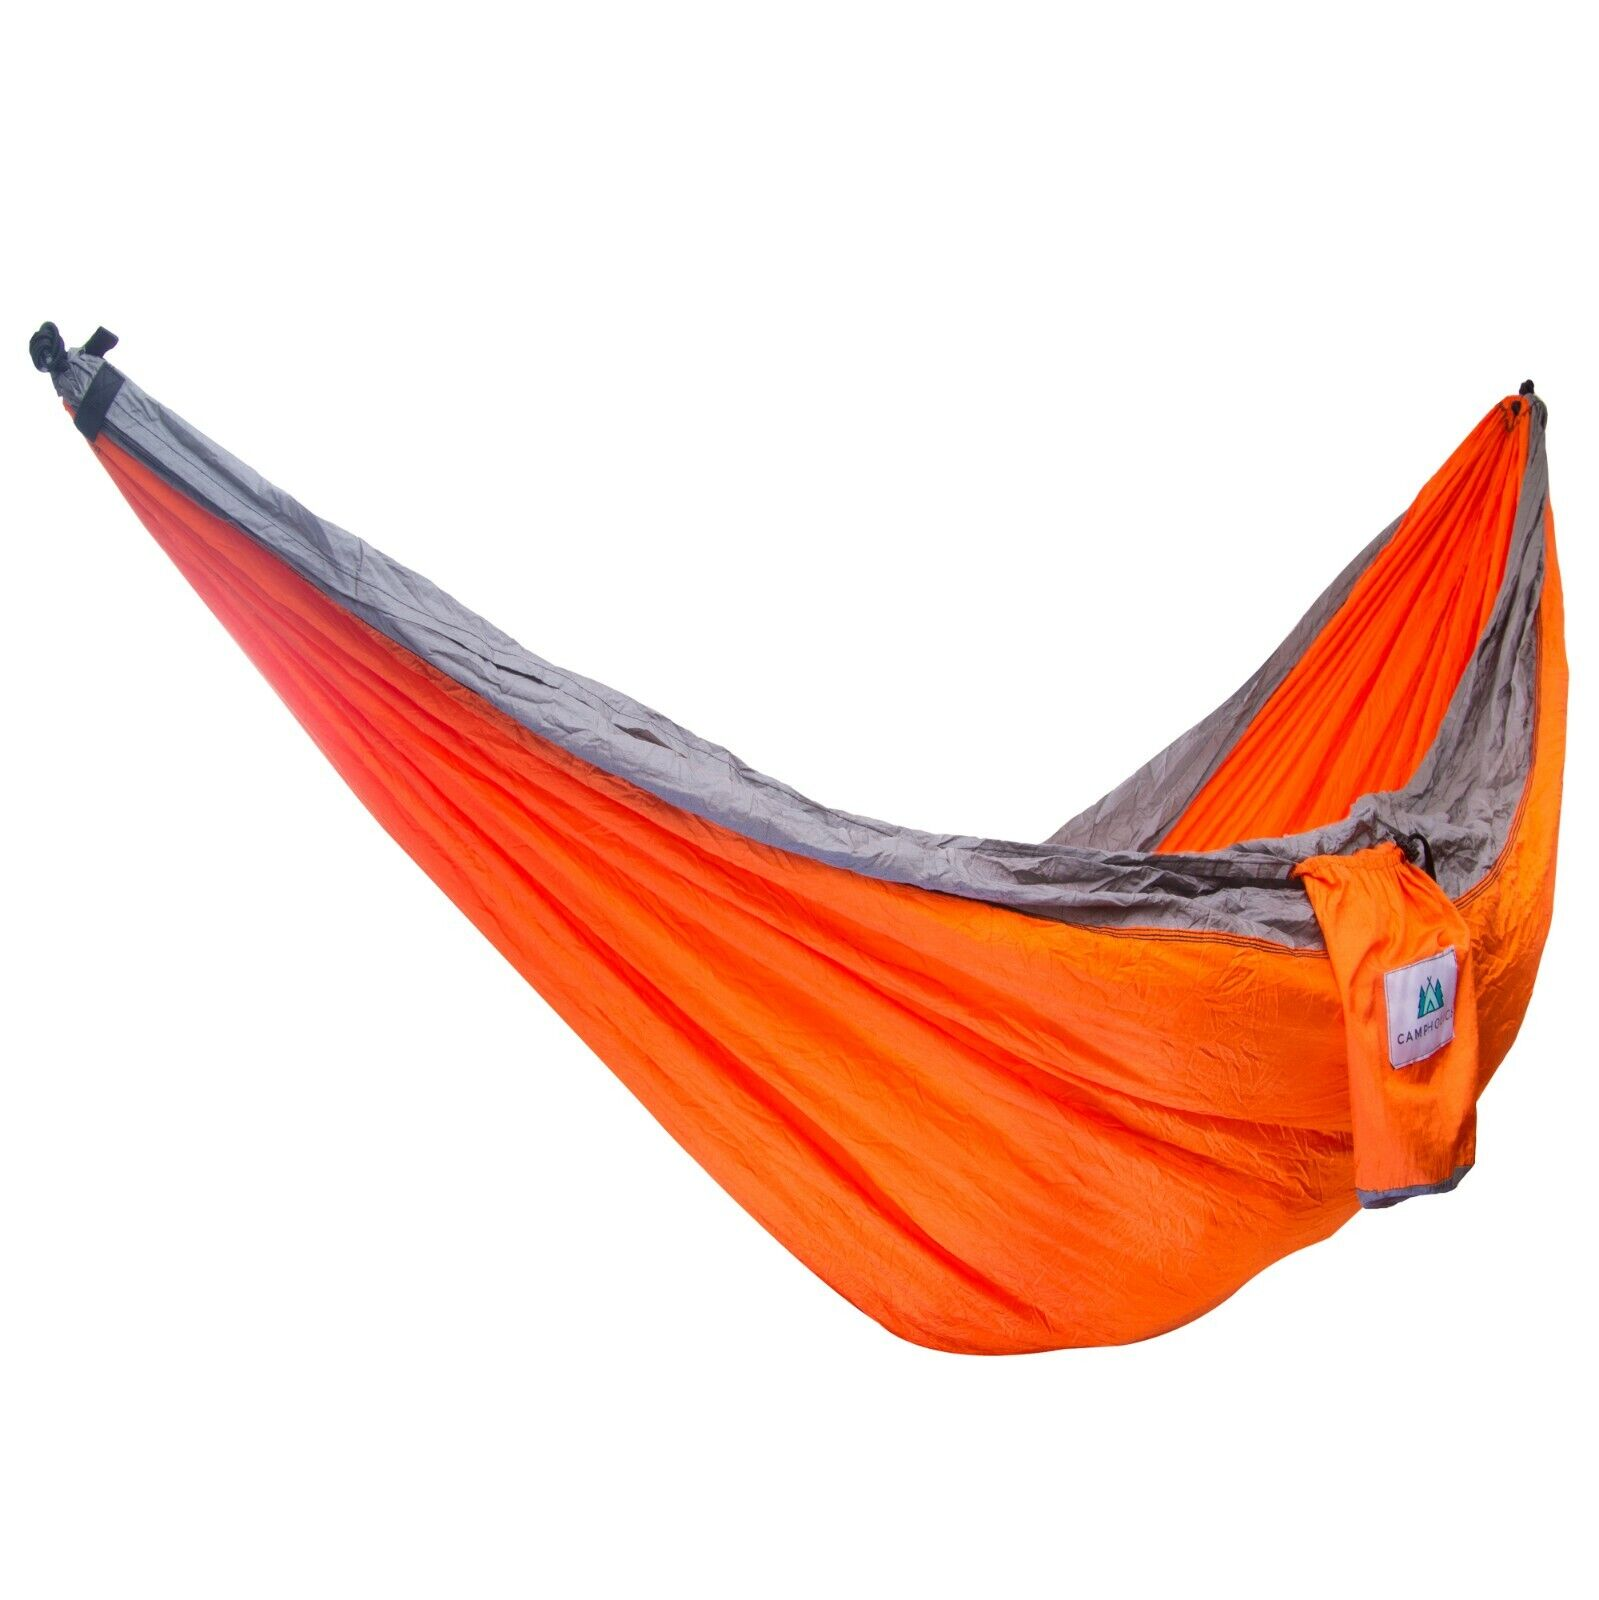 Large Double Camping Hammock with Tree Straps Carabiner Dura